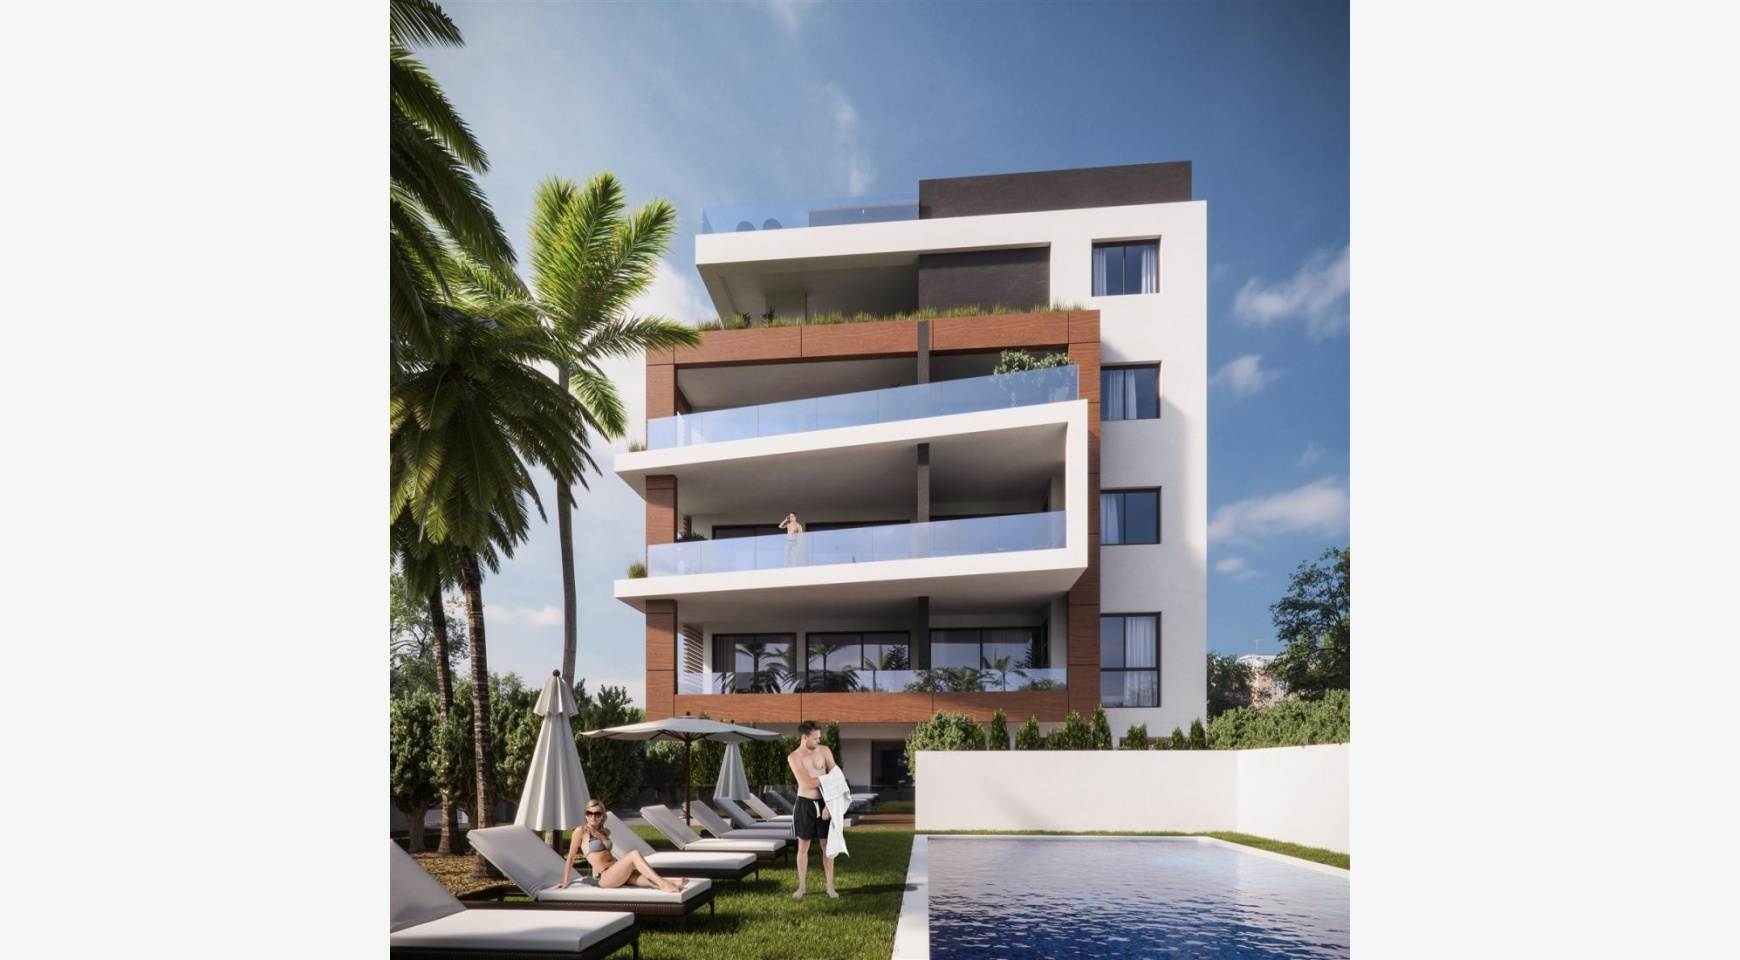 Malibu Residence. New Modern 3 Bedroom Apartment 202 in a Luxury Complex - 5